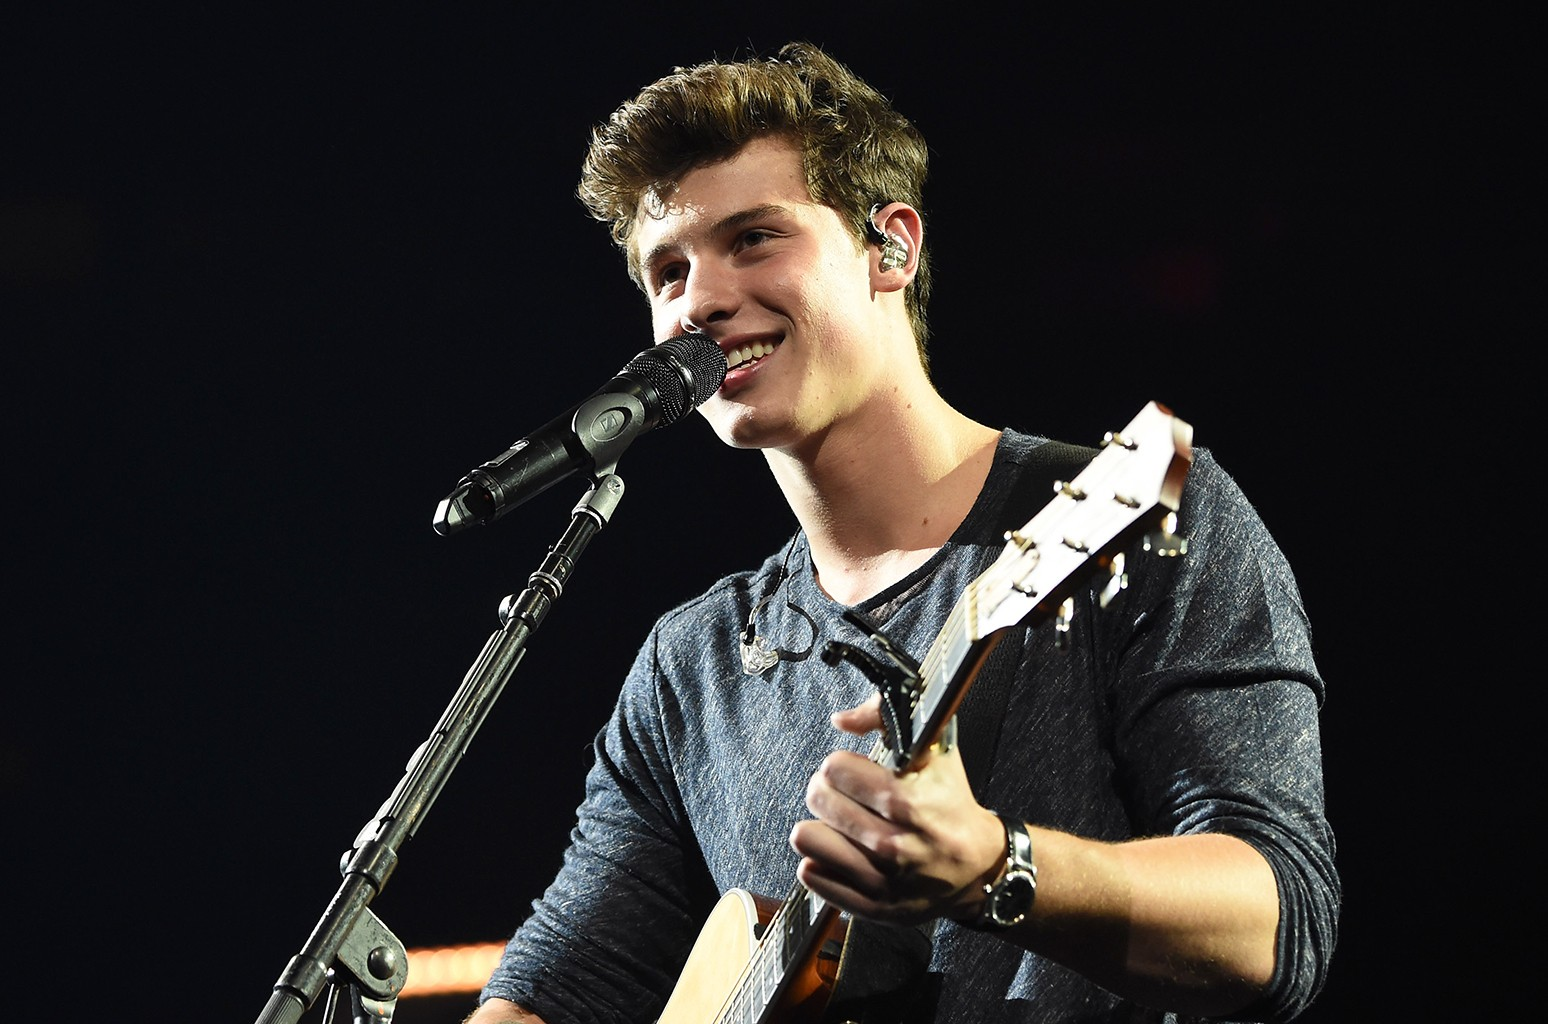 Shawn Mendes performs at Madison Square Garden